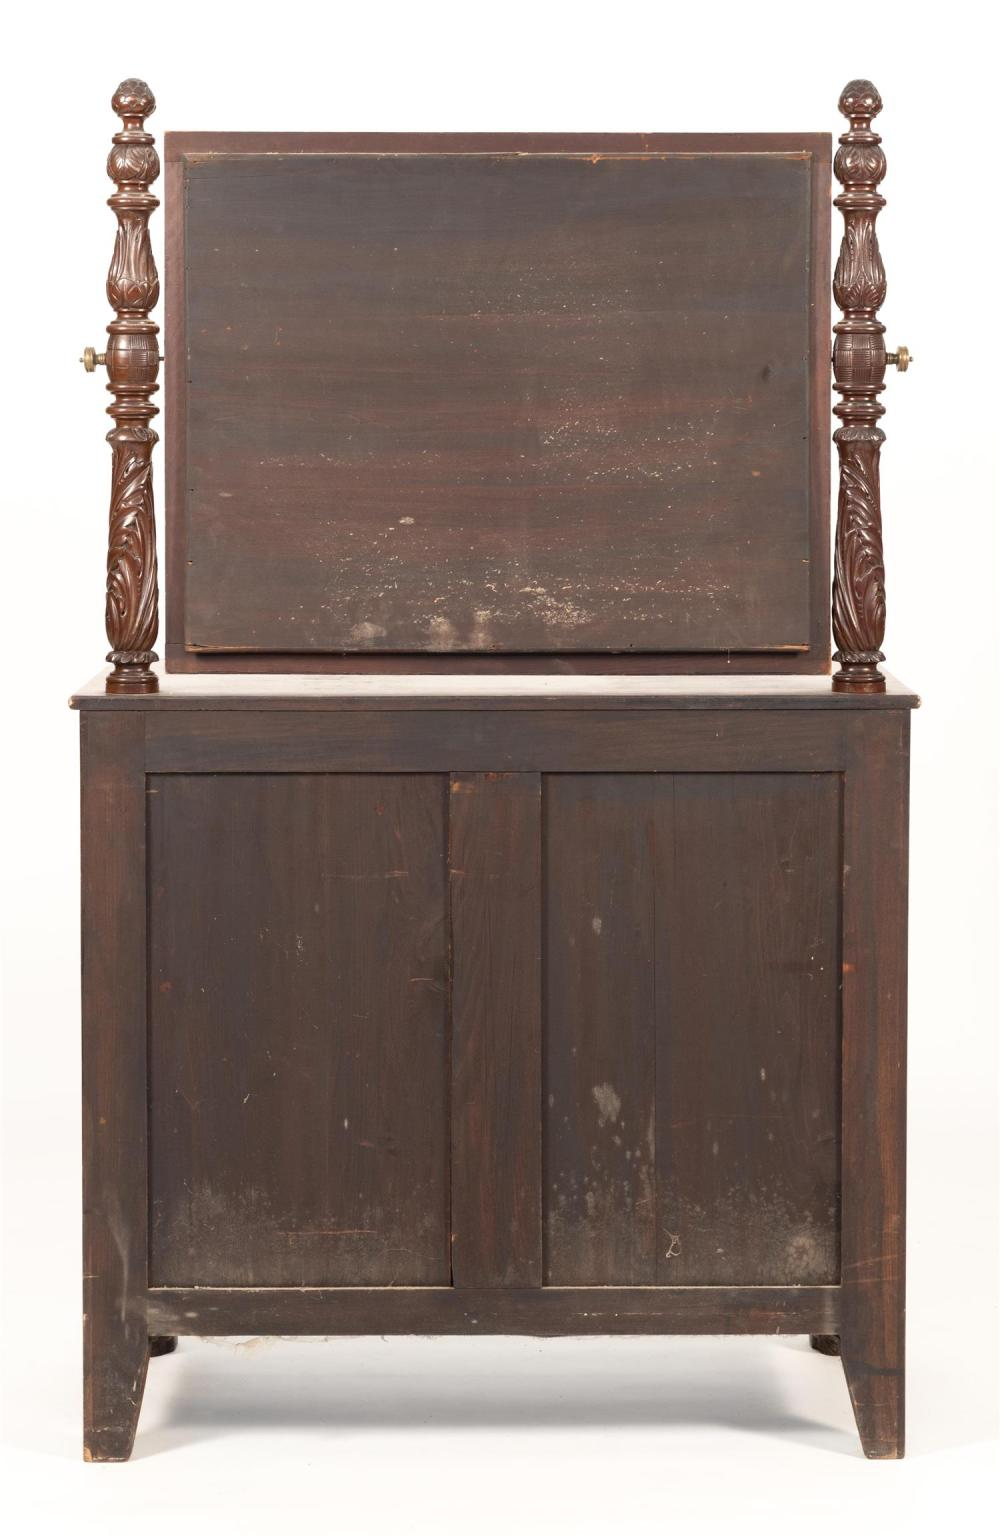 EMPIRE DRESSER In mahogany and mahogany veneer. Mirrored back with acanthus-carved posts. Two half drawers over three full-width dra...